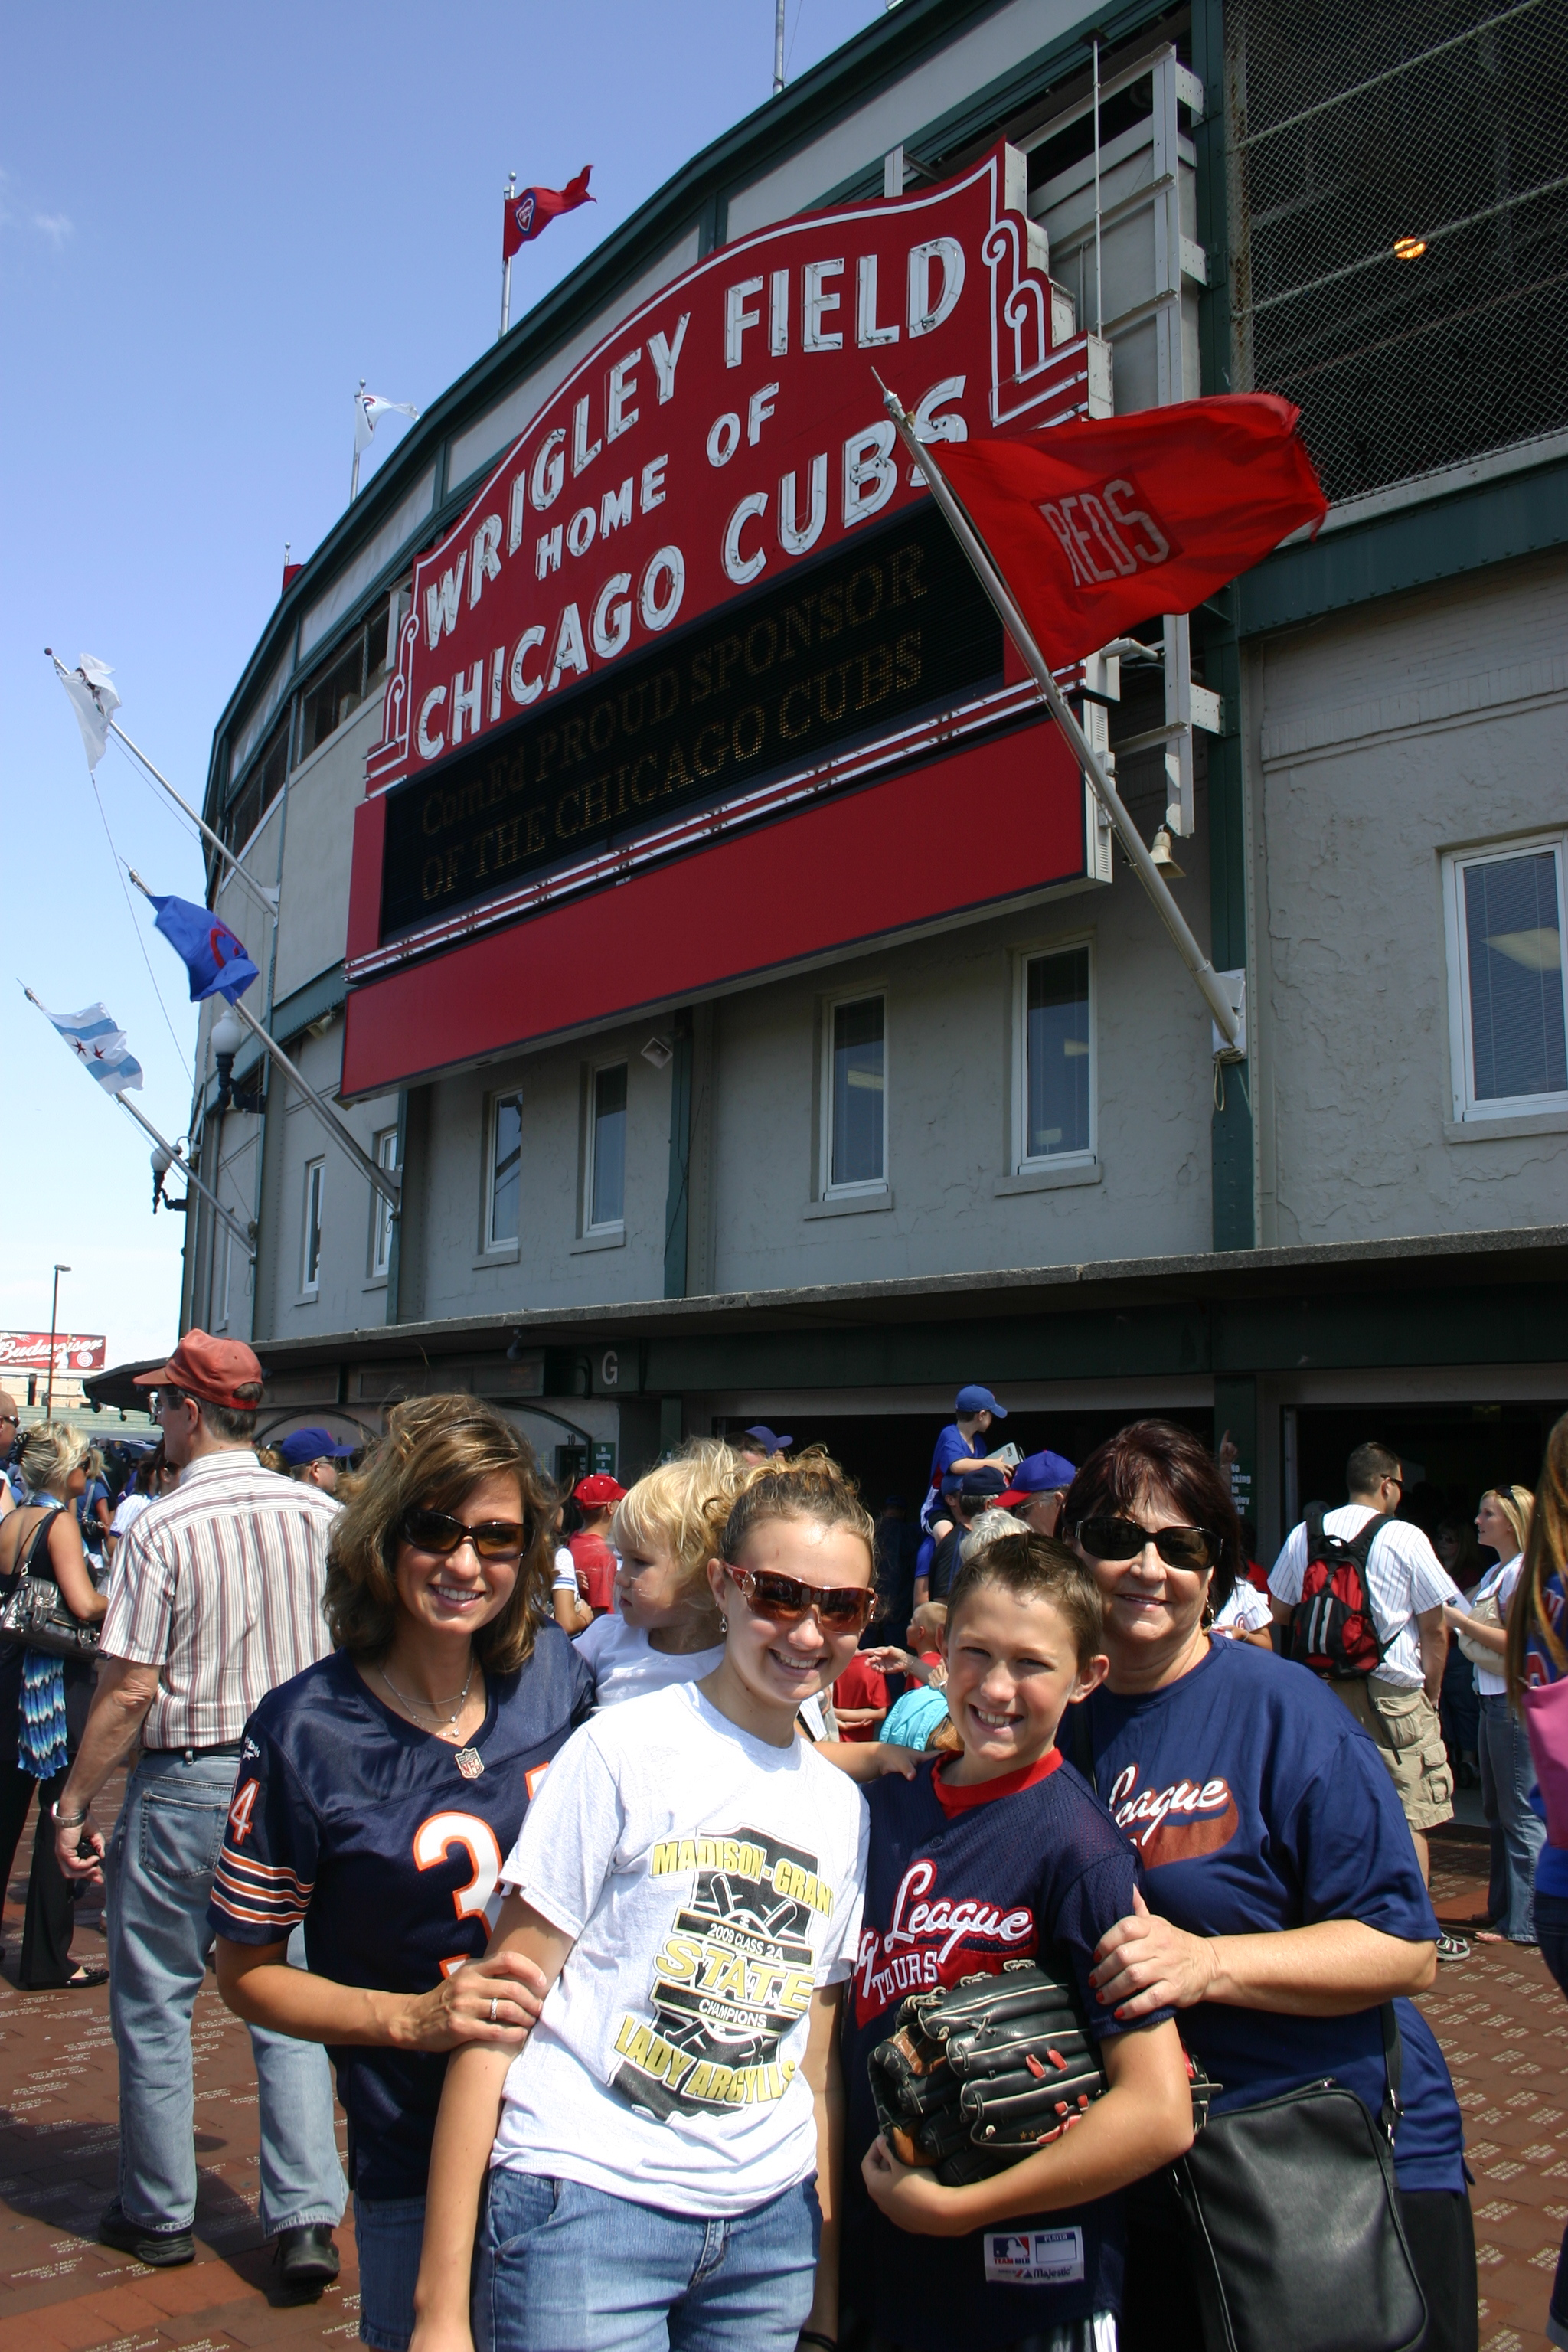 Outside Wrigley Field